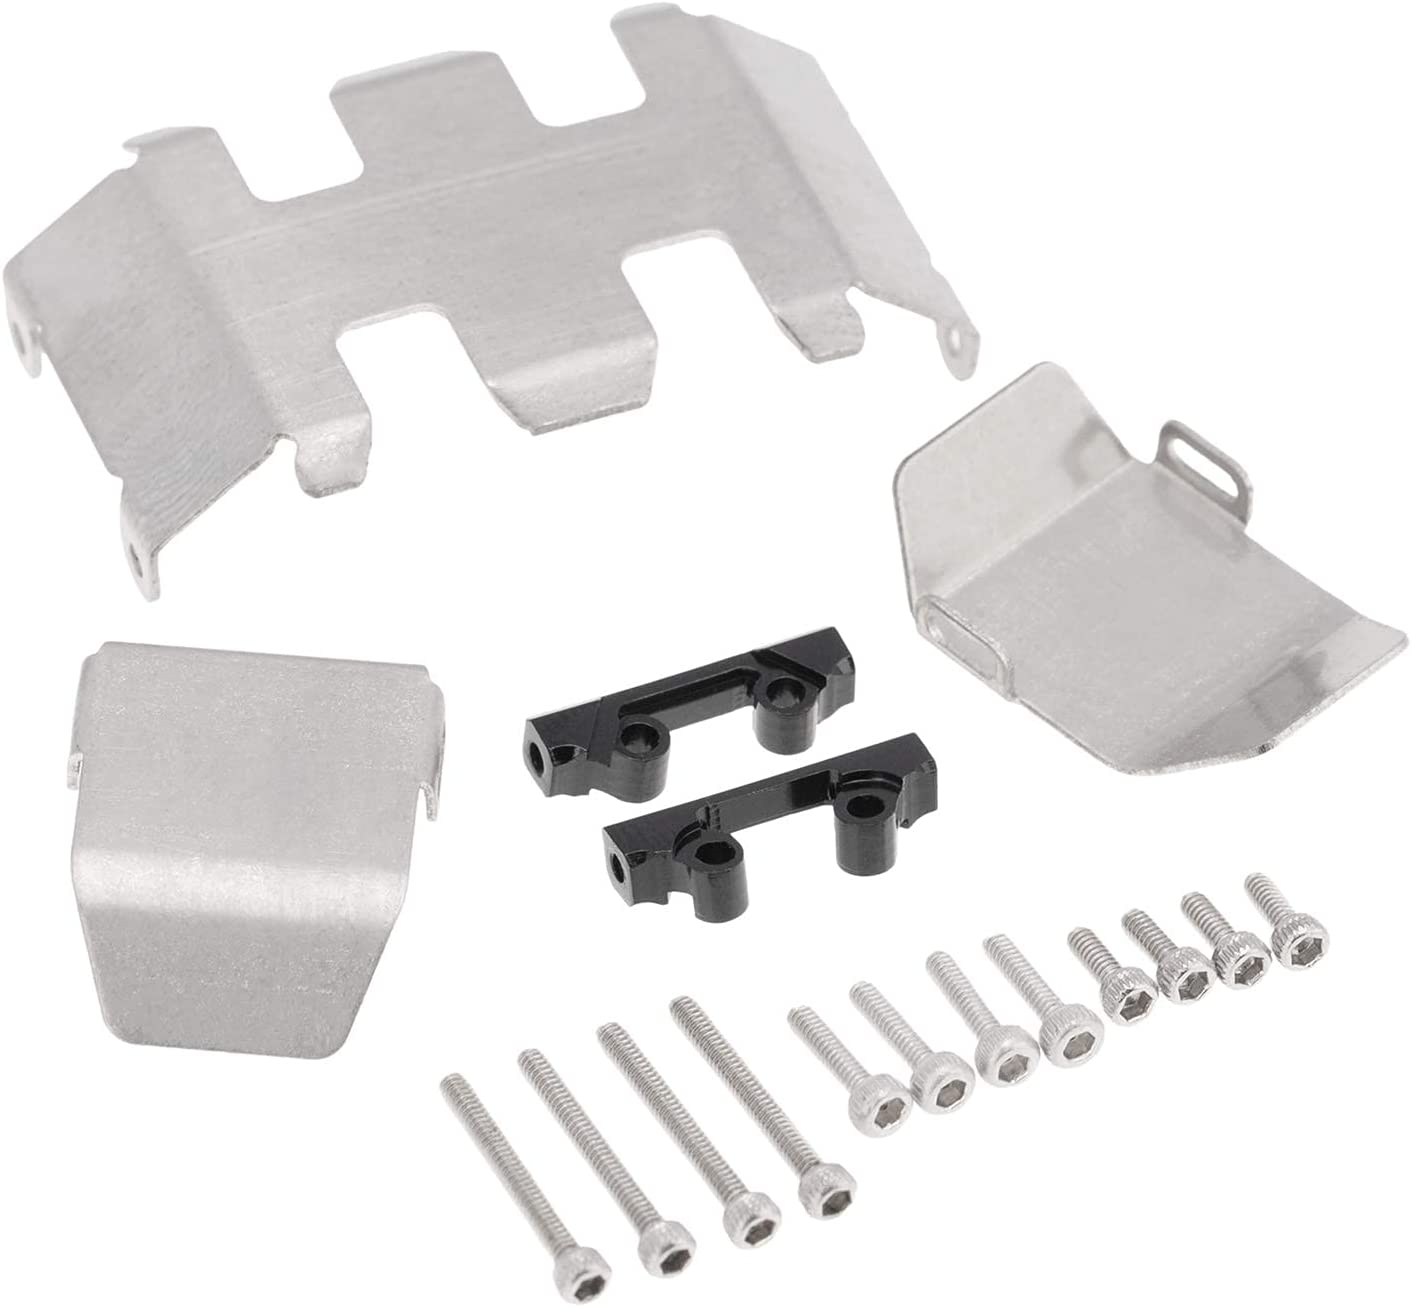 hndfhblshr RC Spare Parts Accessory Plates 3pcs Genuine Free Shipping Set wholesale Protective